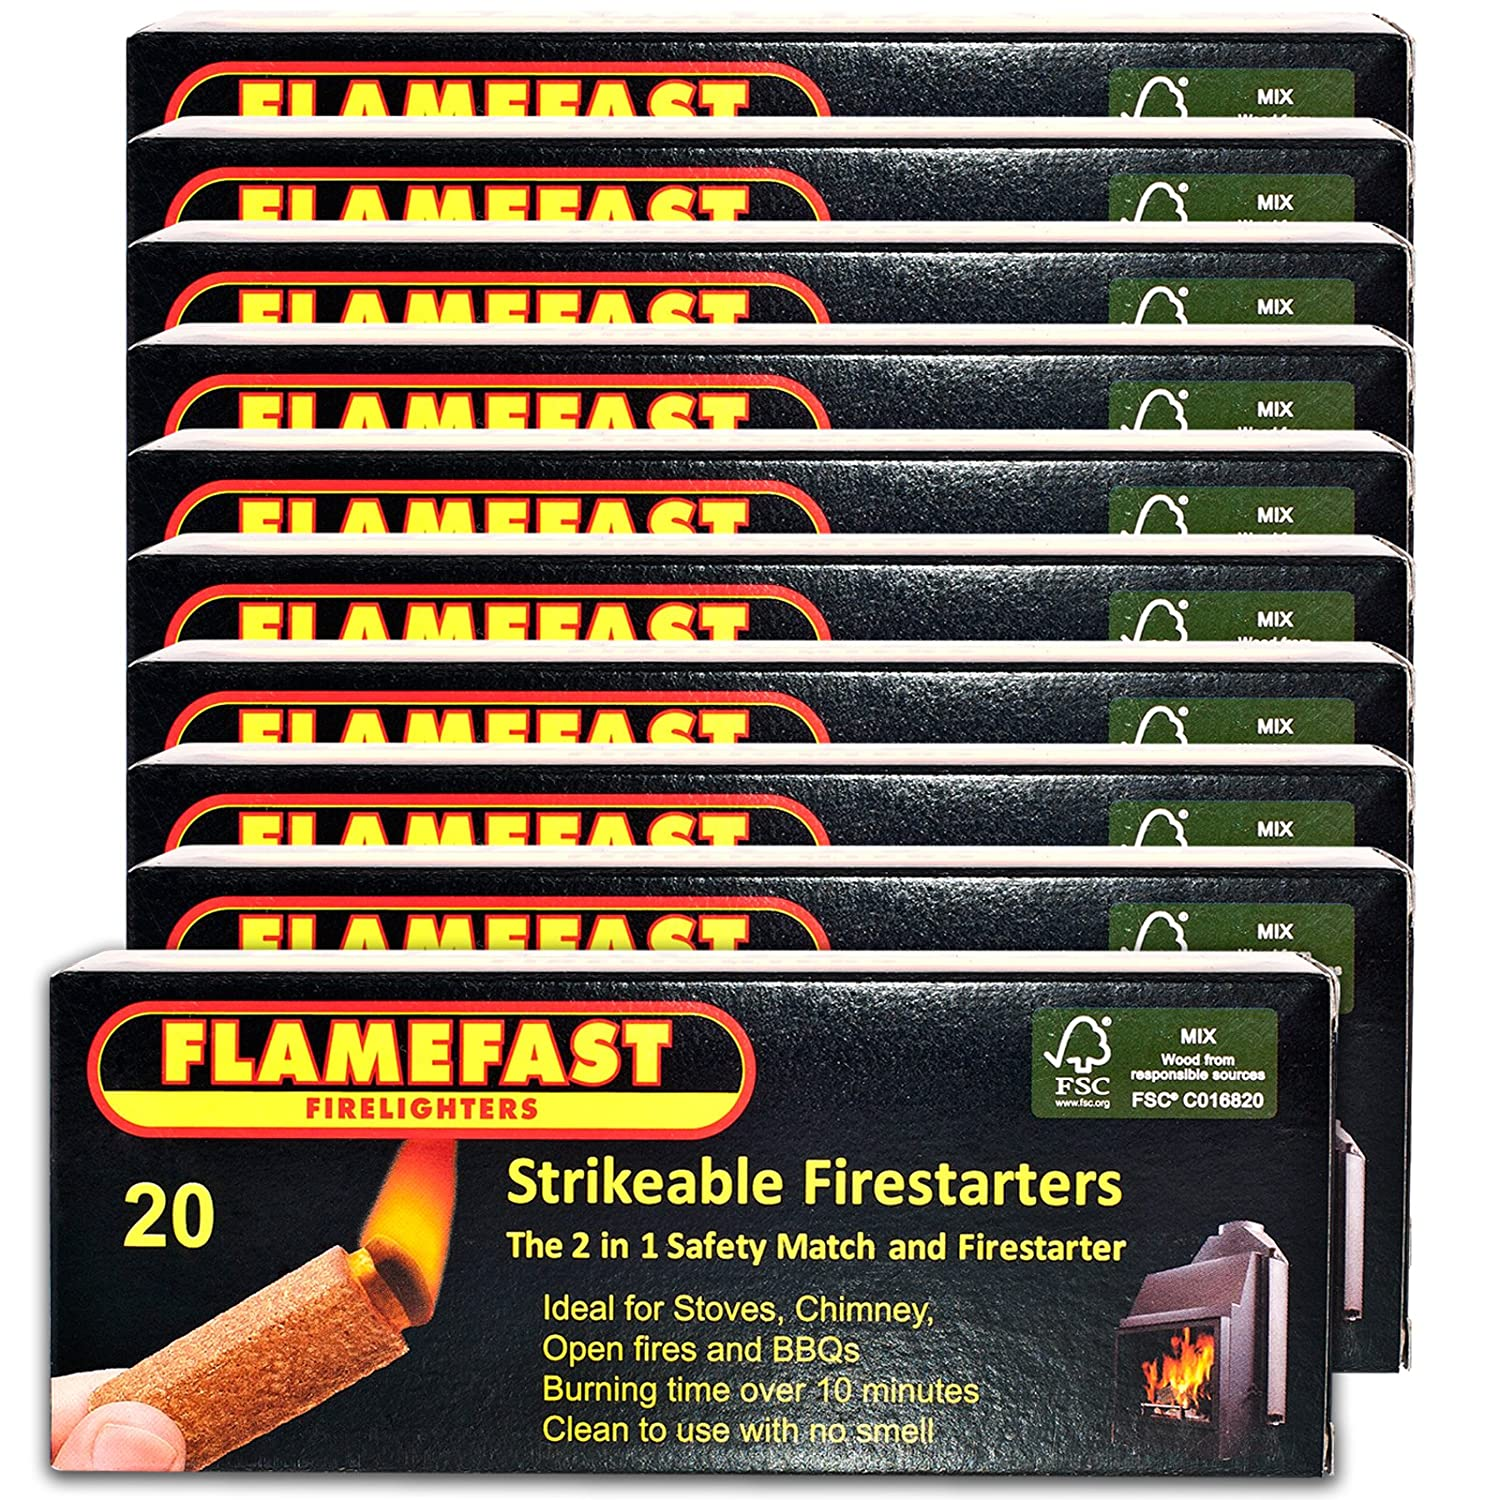 10 X Packs of 20 Flamefast Strikeable Firelighters Easy to Use 2in1 Safety Match and Firestarter Burns for 10 Minutes & Tigerbox Safety Matches